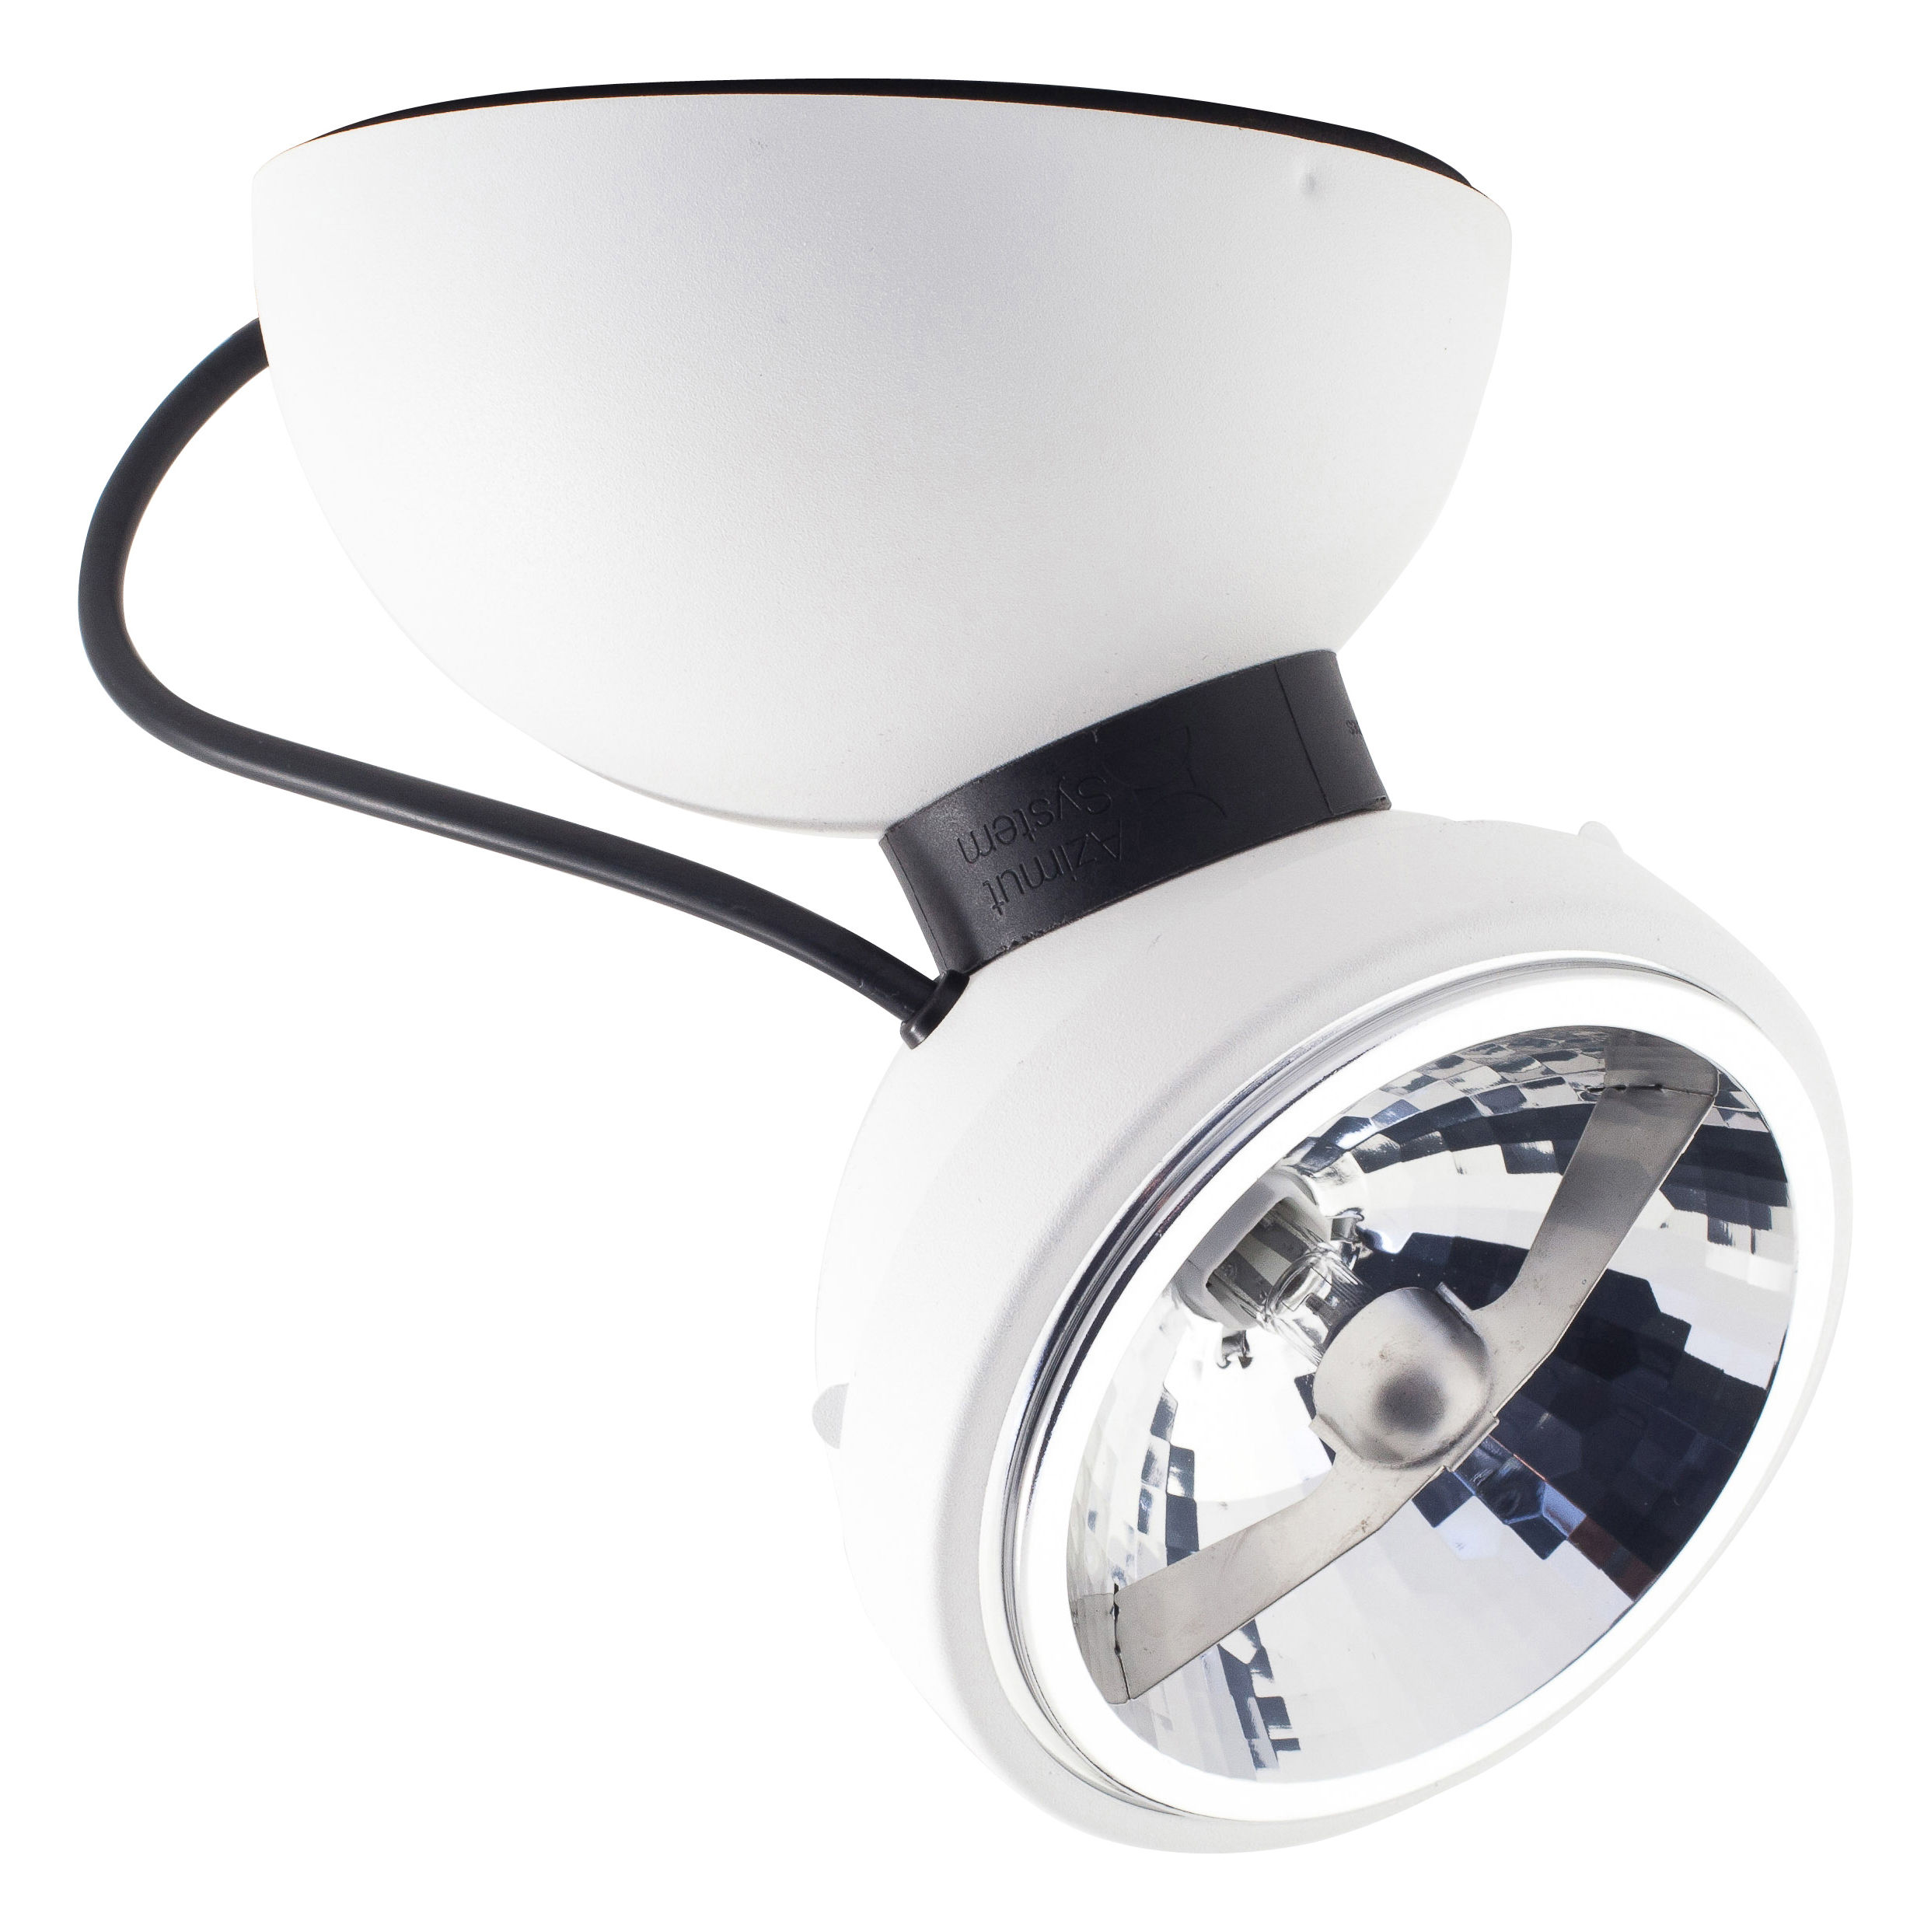 Lighting - Wall Lights - Monopro 360° Wall light - Ceiling light by Azimut Industries - White - Lacquered metal